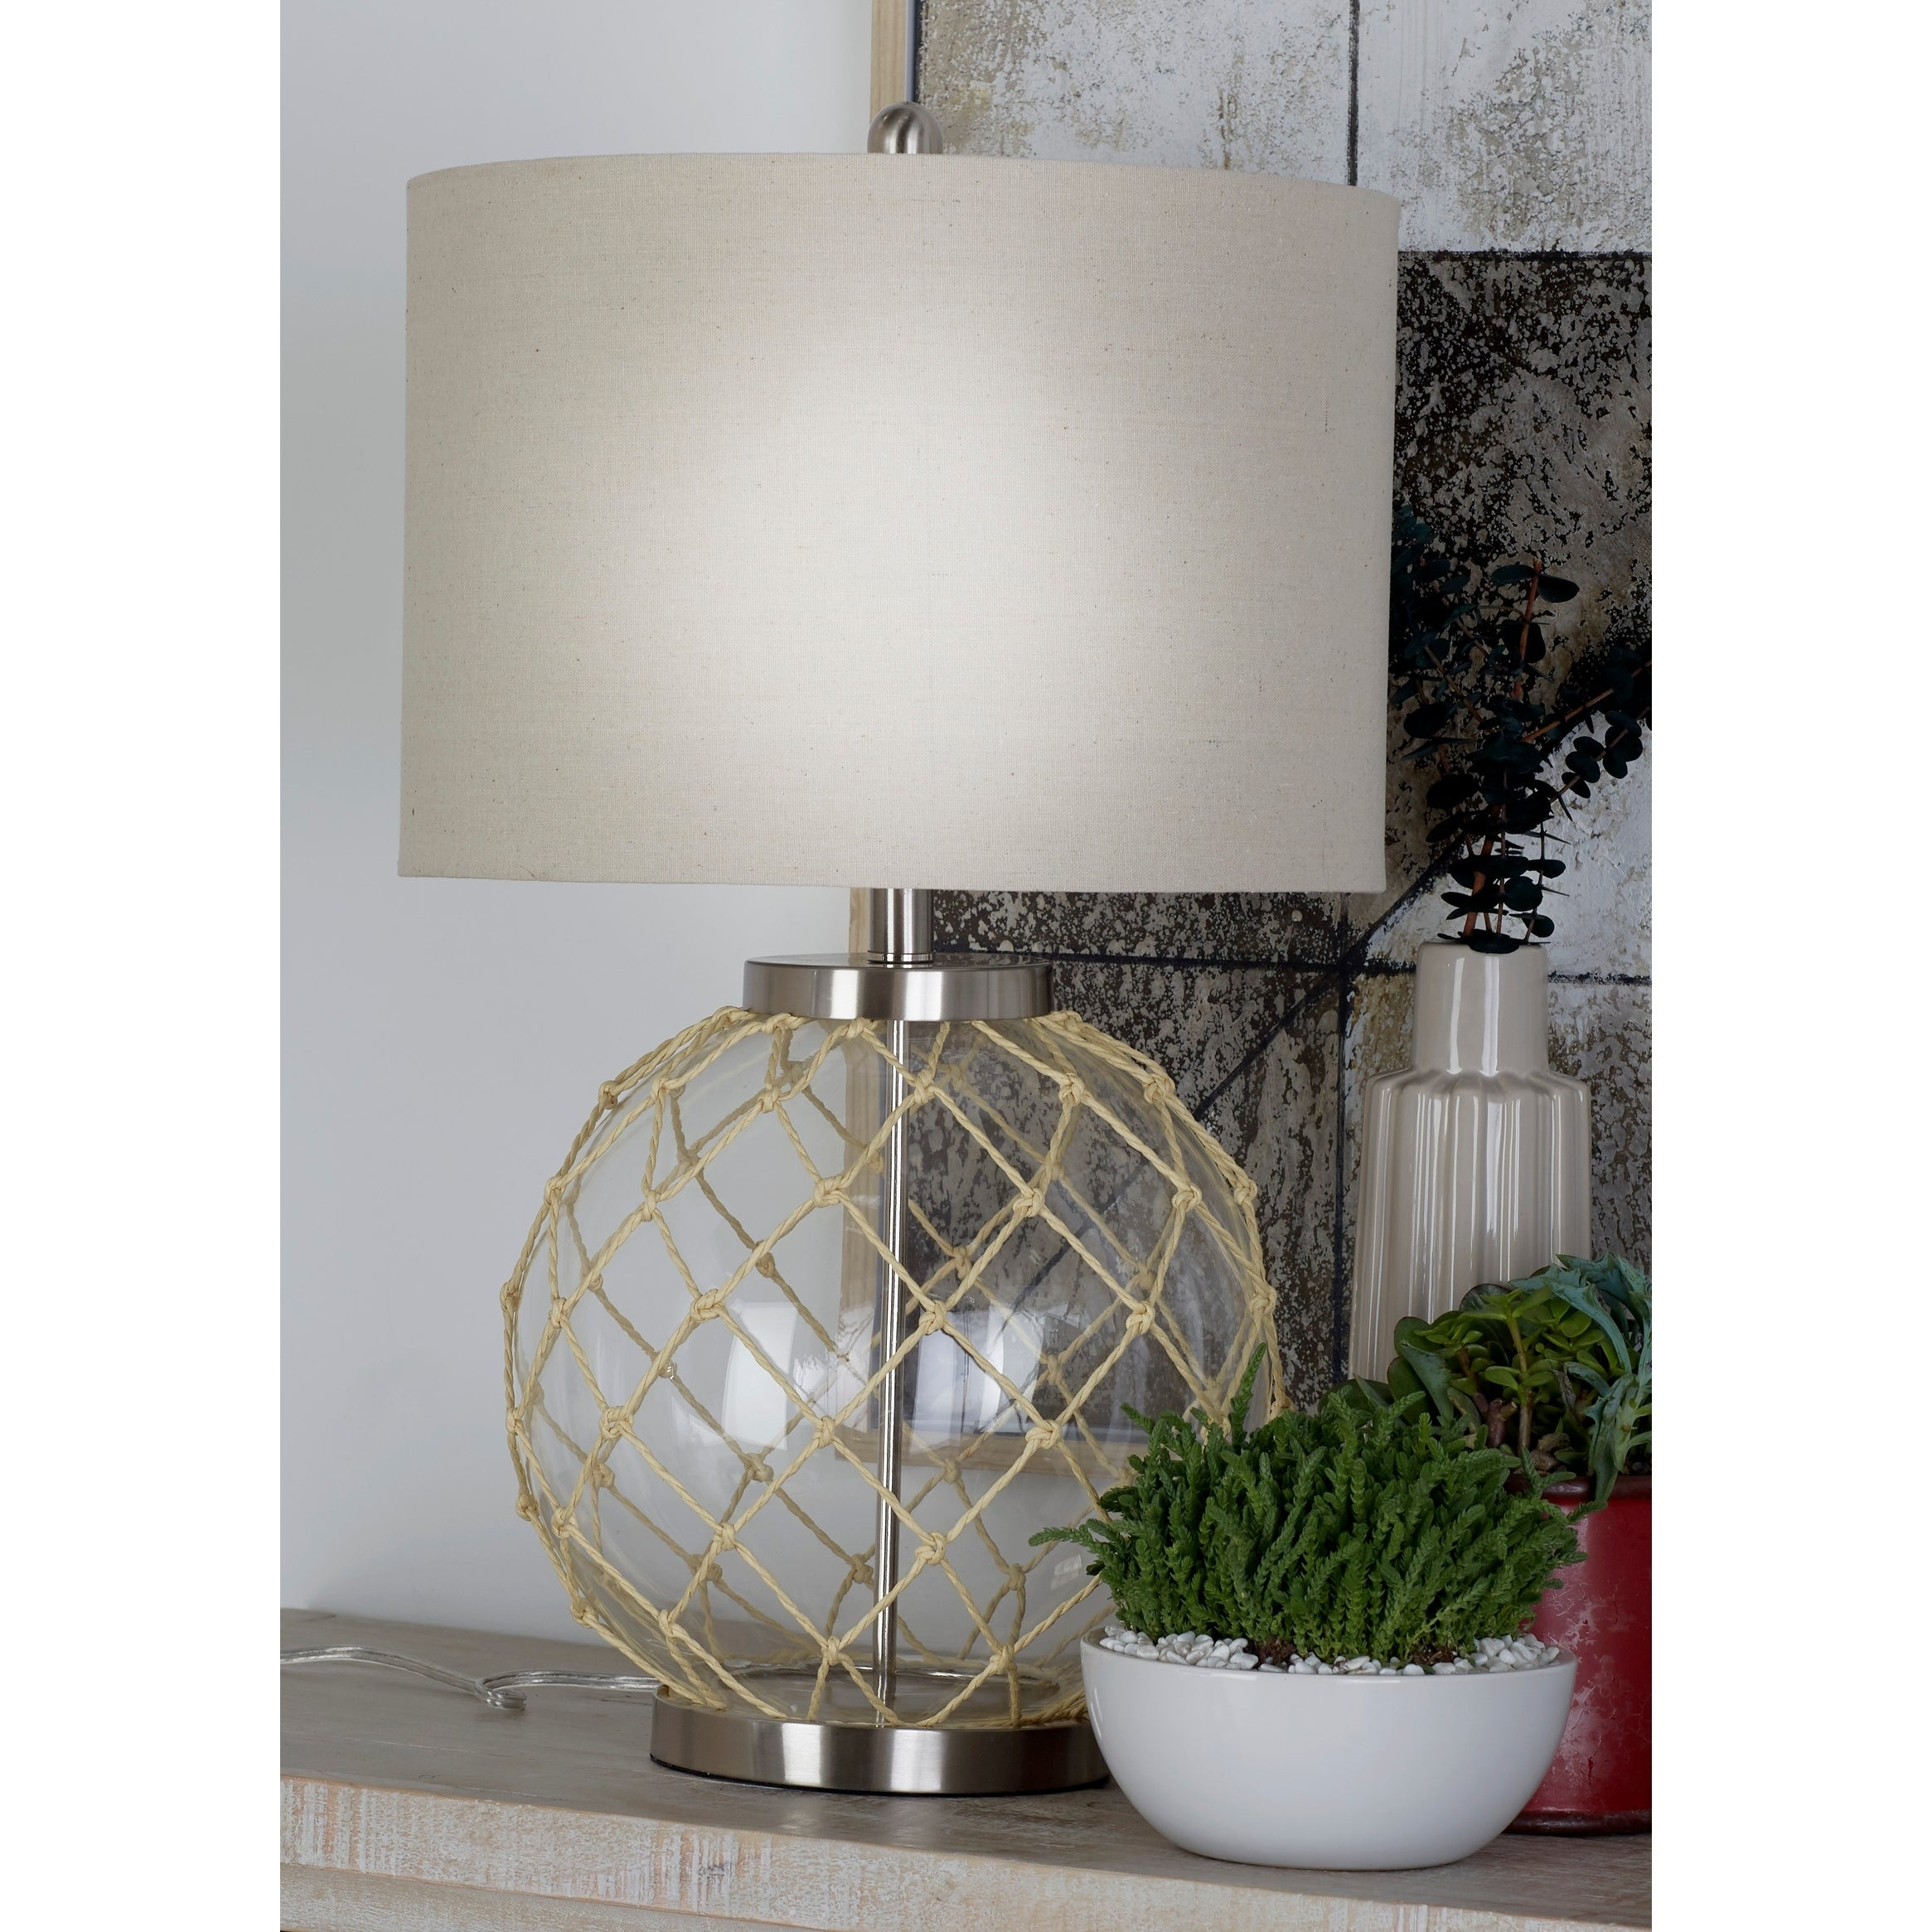 Studio 350 Set of 2, Glass Metal Table Lamp 26 inches hig...